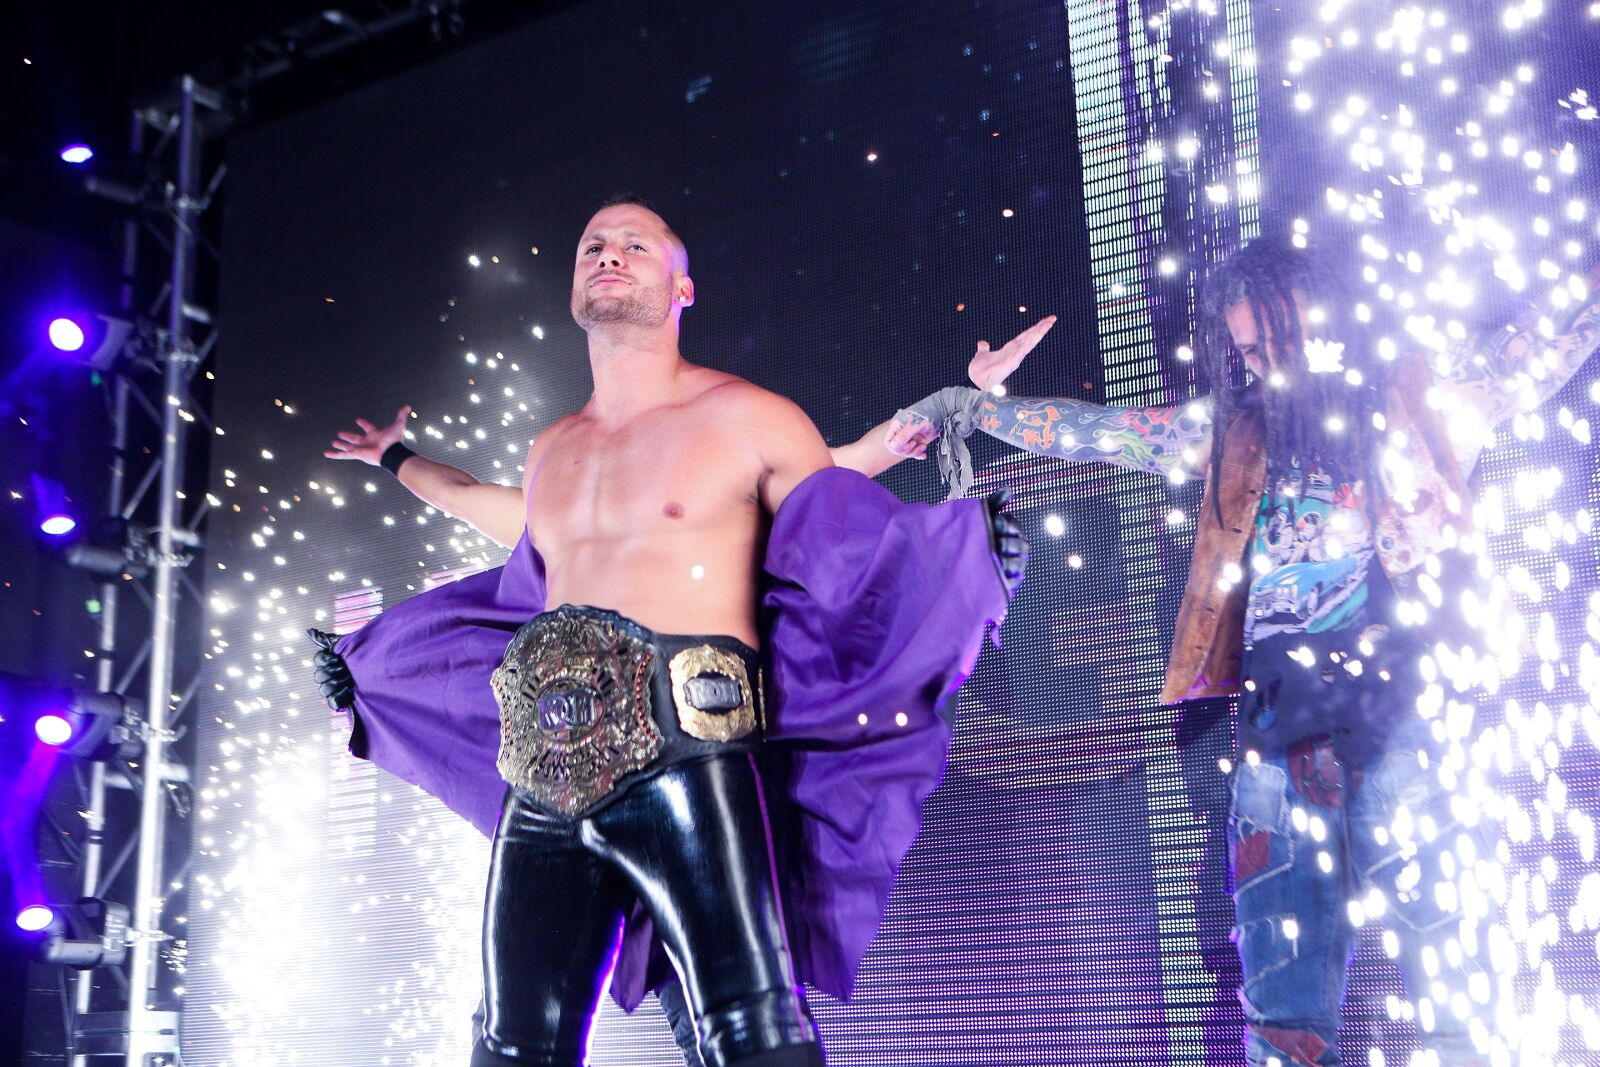 If pro wrestling is thriving, why is Ring of Honor struggling?